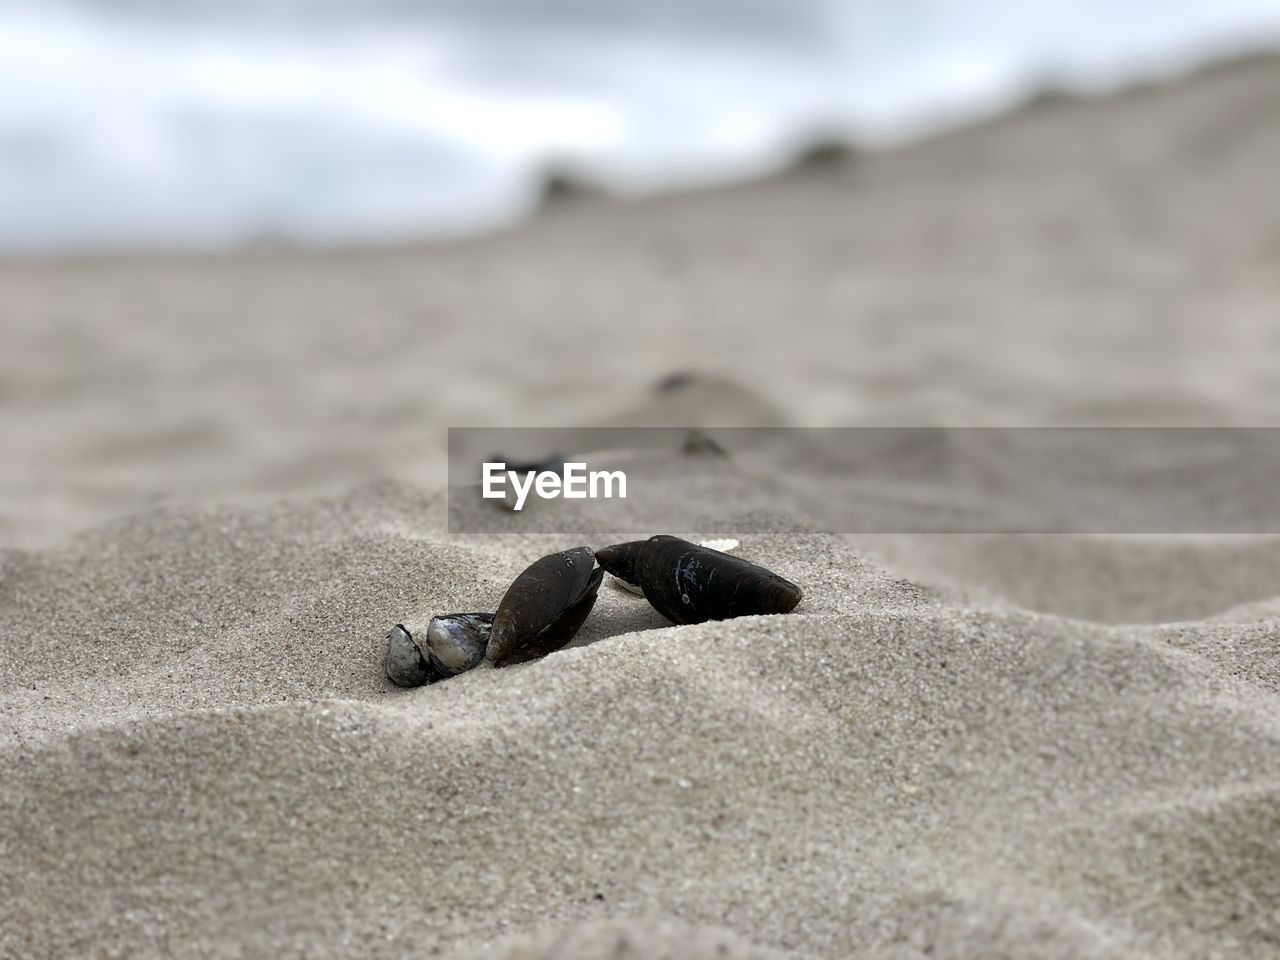 beach, sand, land, selective focus, nature, no people, animal, day, sea, animal wildlife, close-up, animal themes, one animal, animals in the wild, outdoors, surface level, focus on foreground, solid, rock, sea life, marine